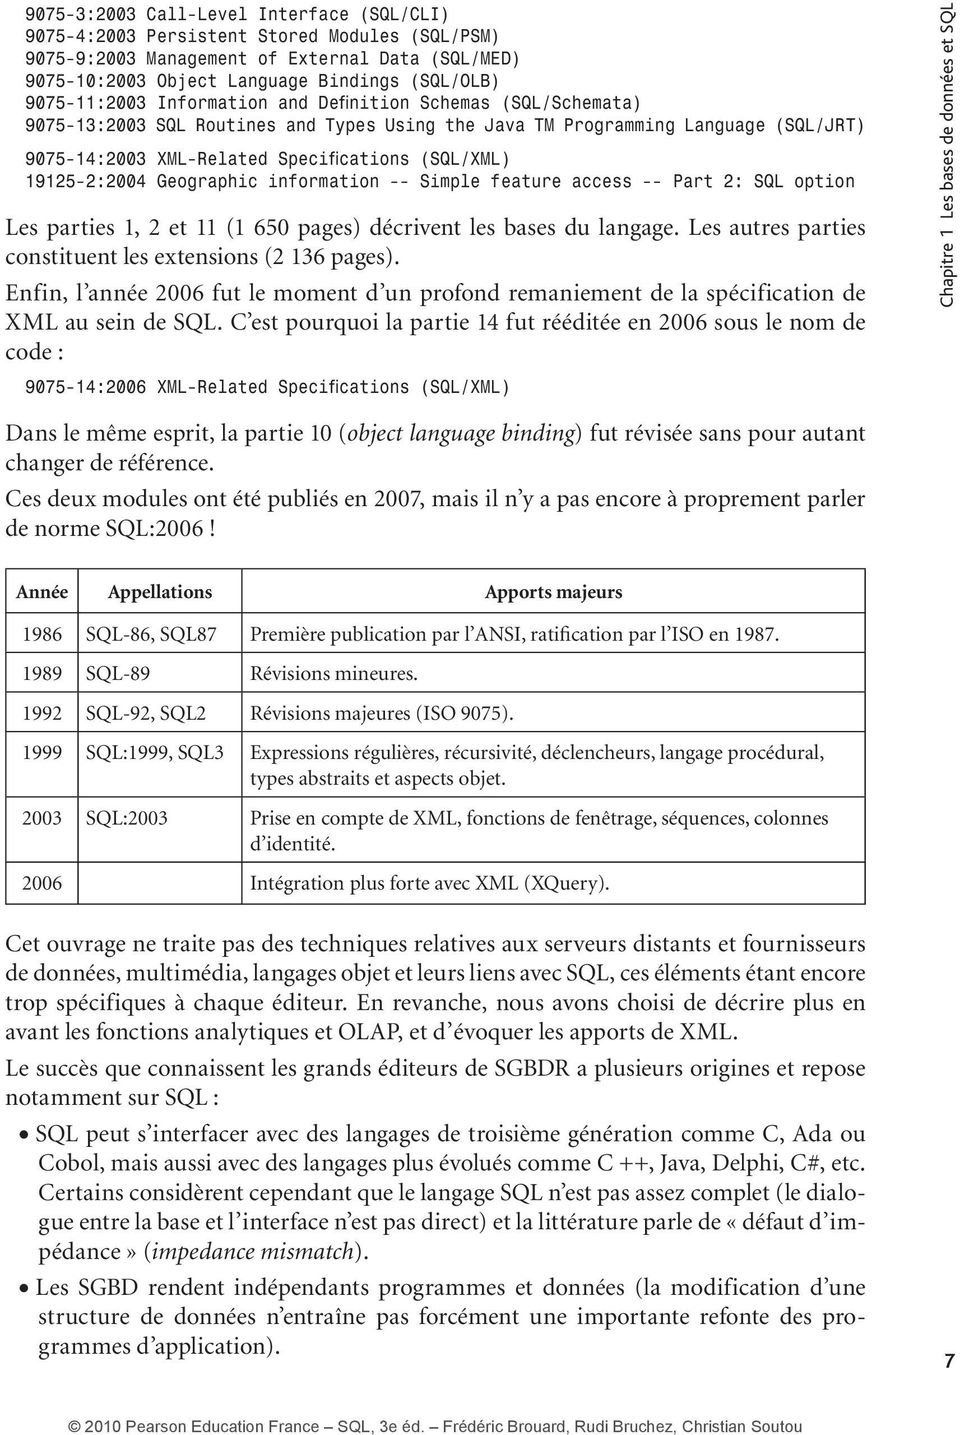 19125-2:2004 Geographic information -- Simple feature access -- Part 2: SQL option Les parties 1, 2 et 11 (1 650 pages) décrivent les bases du langage.